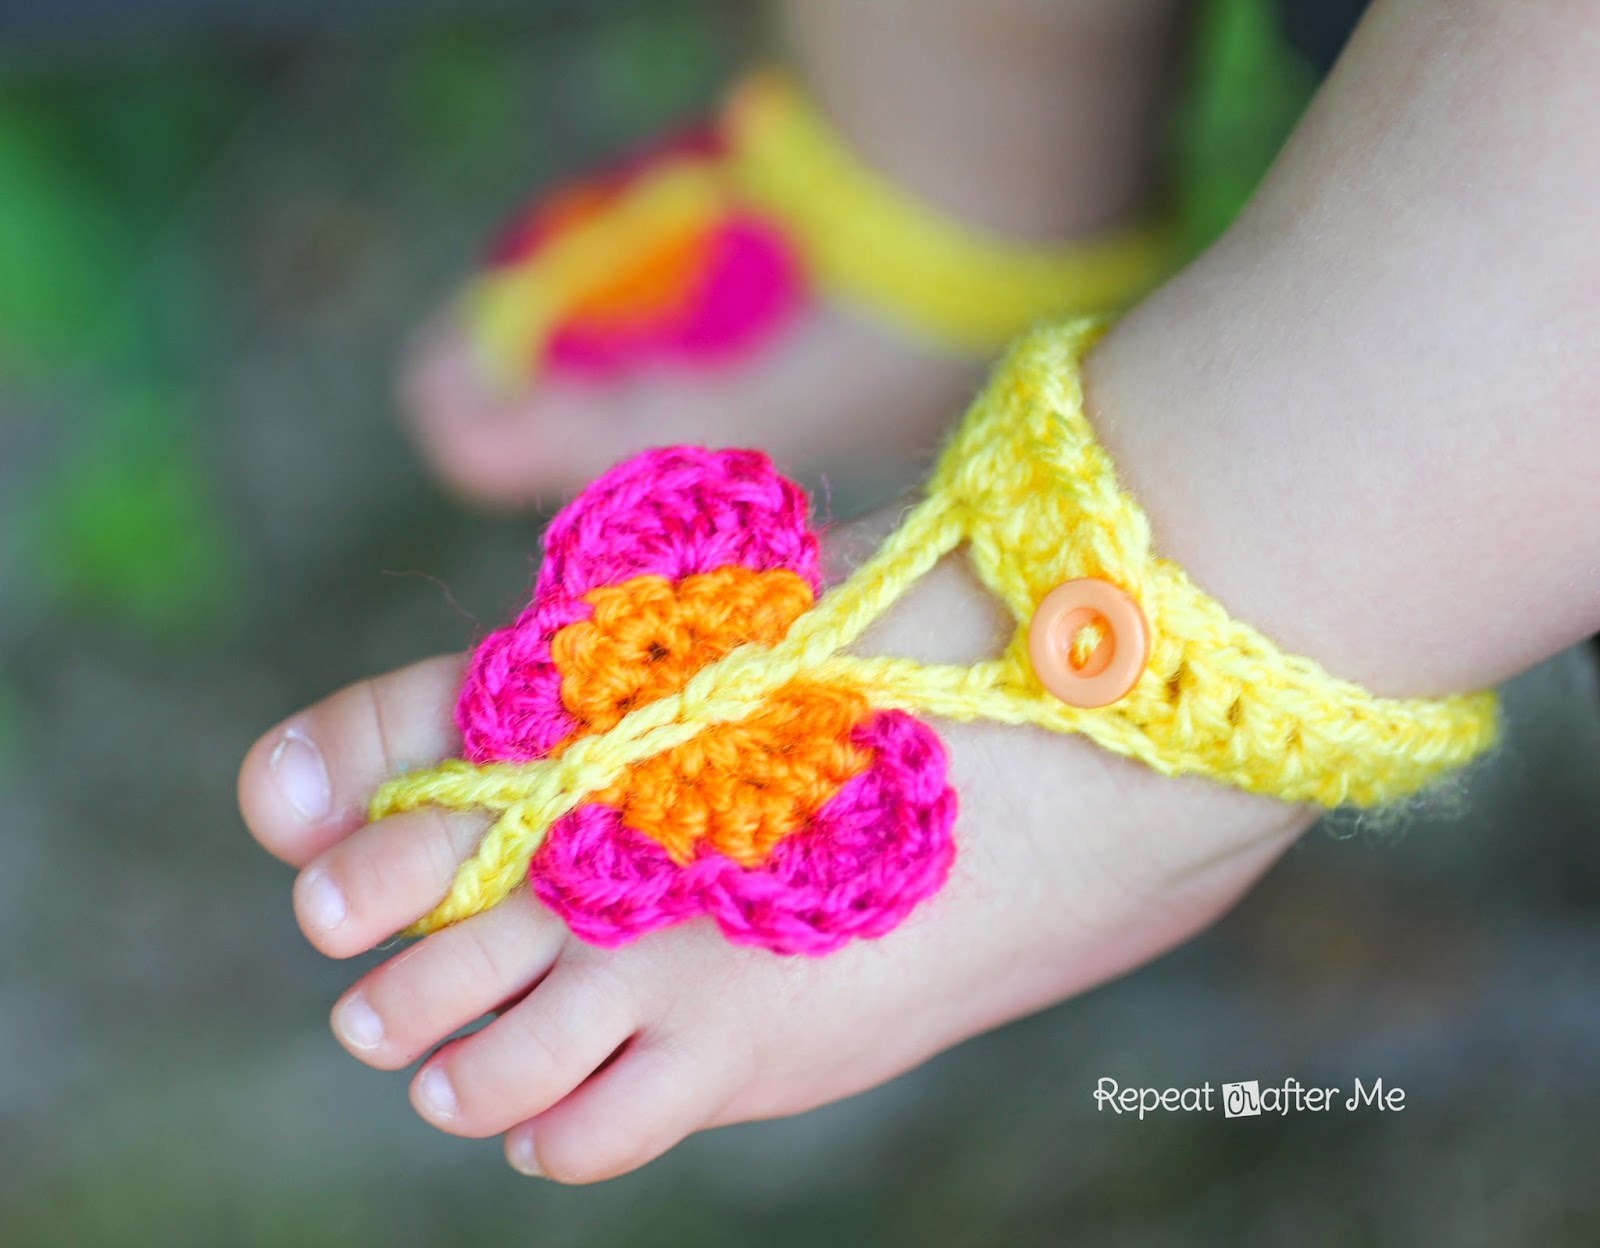 Crochet Baby Toe Sandals Free Pattern : Crochet Butterfly Barefoot Sandals - Repeat Crafter Me